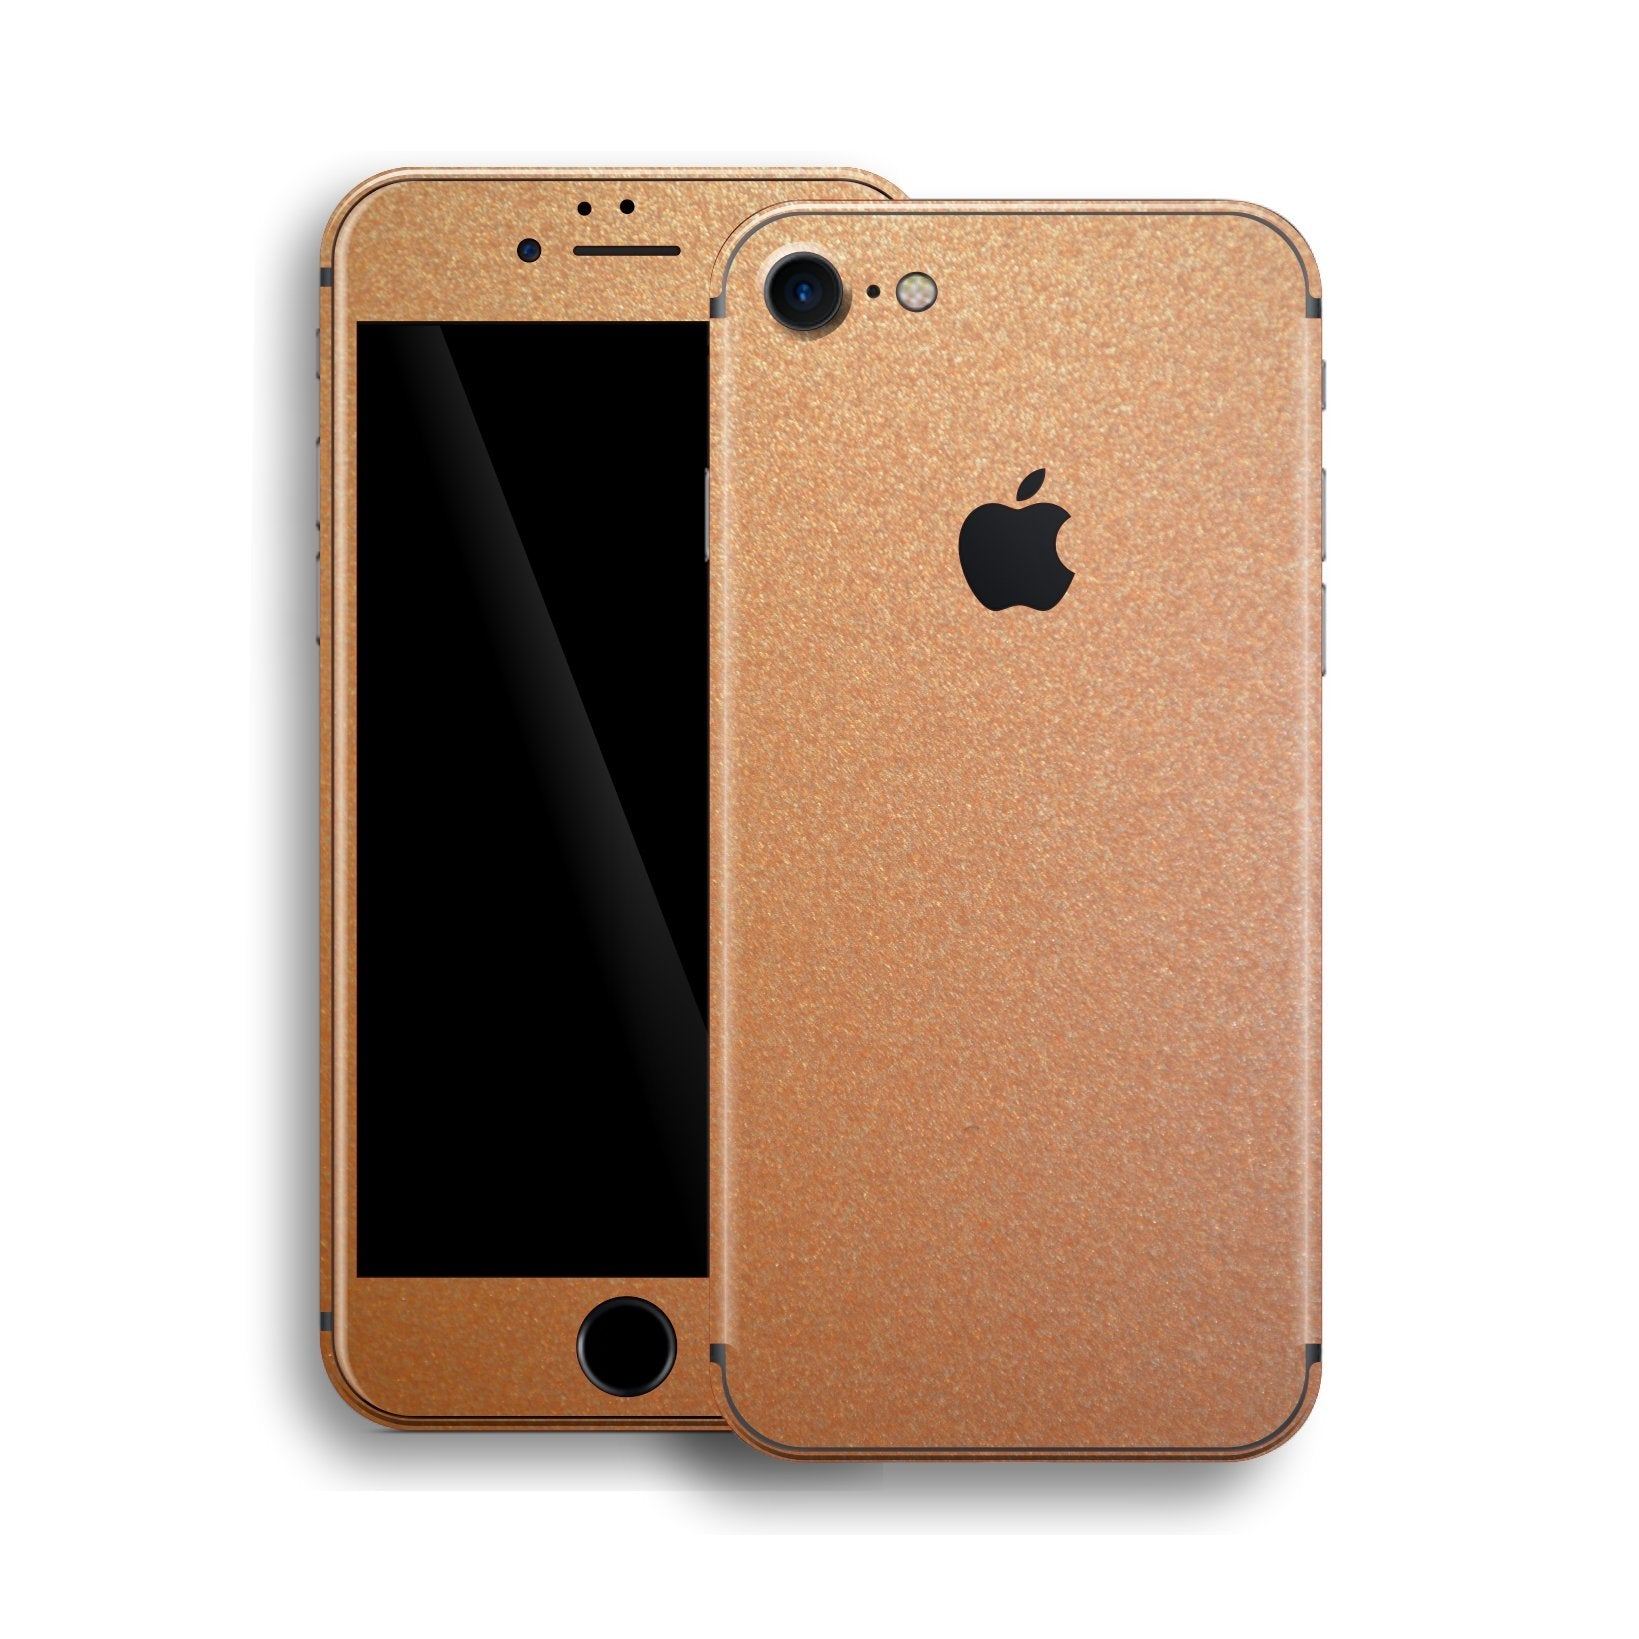 iPhone 8 Copper Matt Matte Metallic Skin, Wrap, Decal, Protector, Cover by EasySkinz | EasySkinz.com